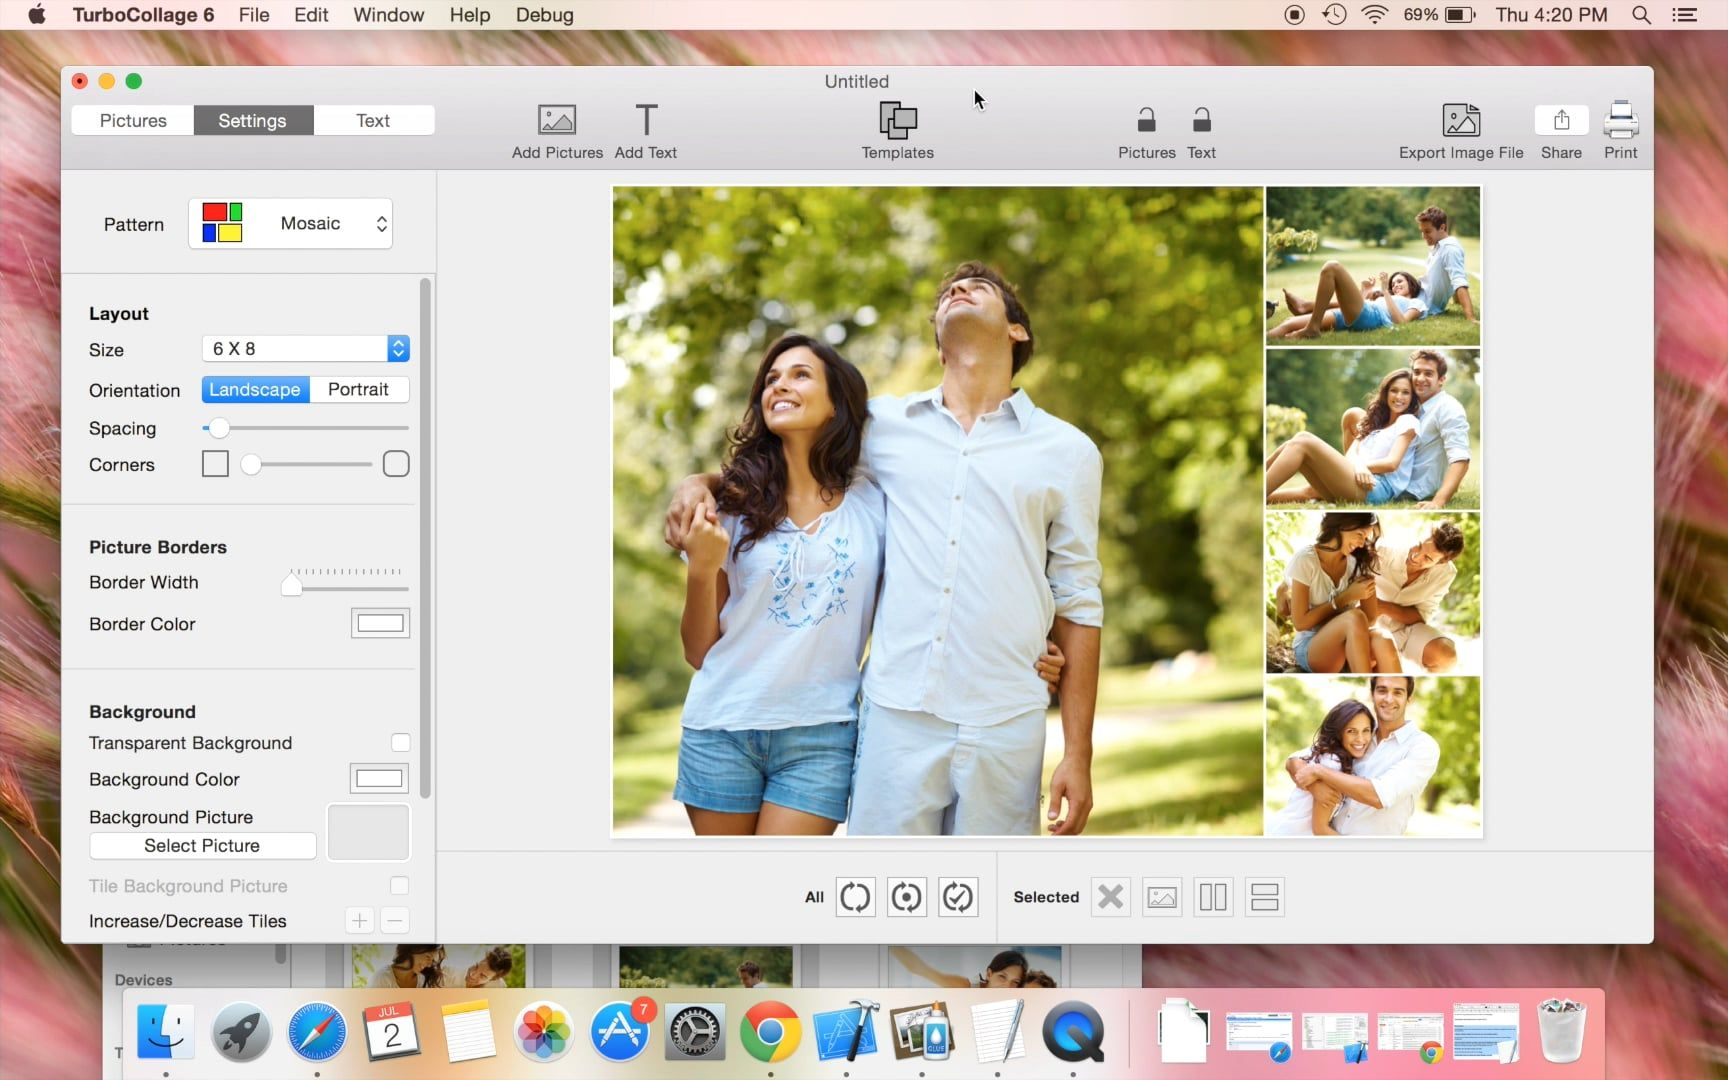 TurboCollage 7.2.2.0 Crack 2021 With Key Latest Full Free Download